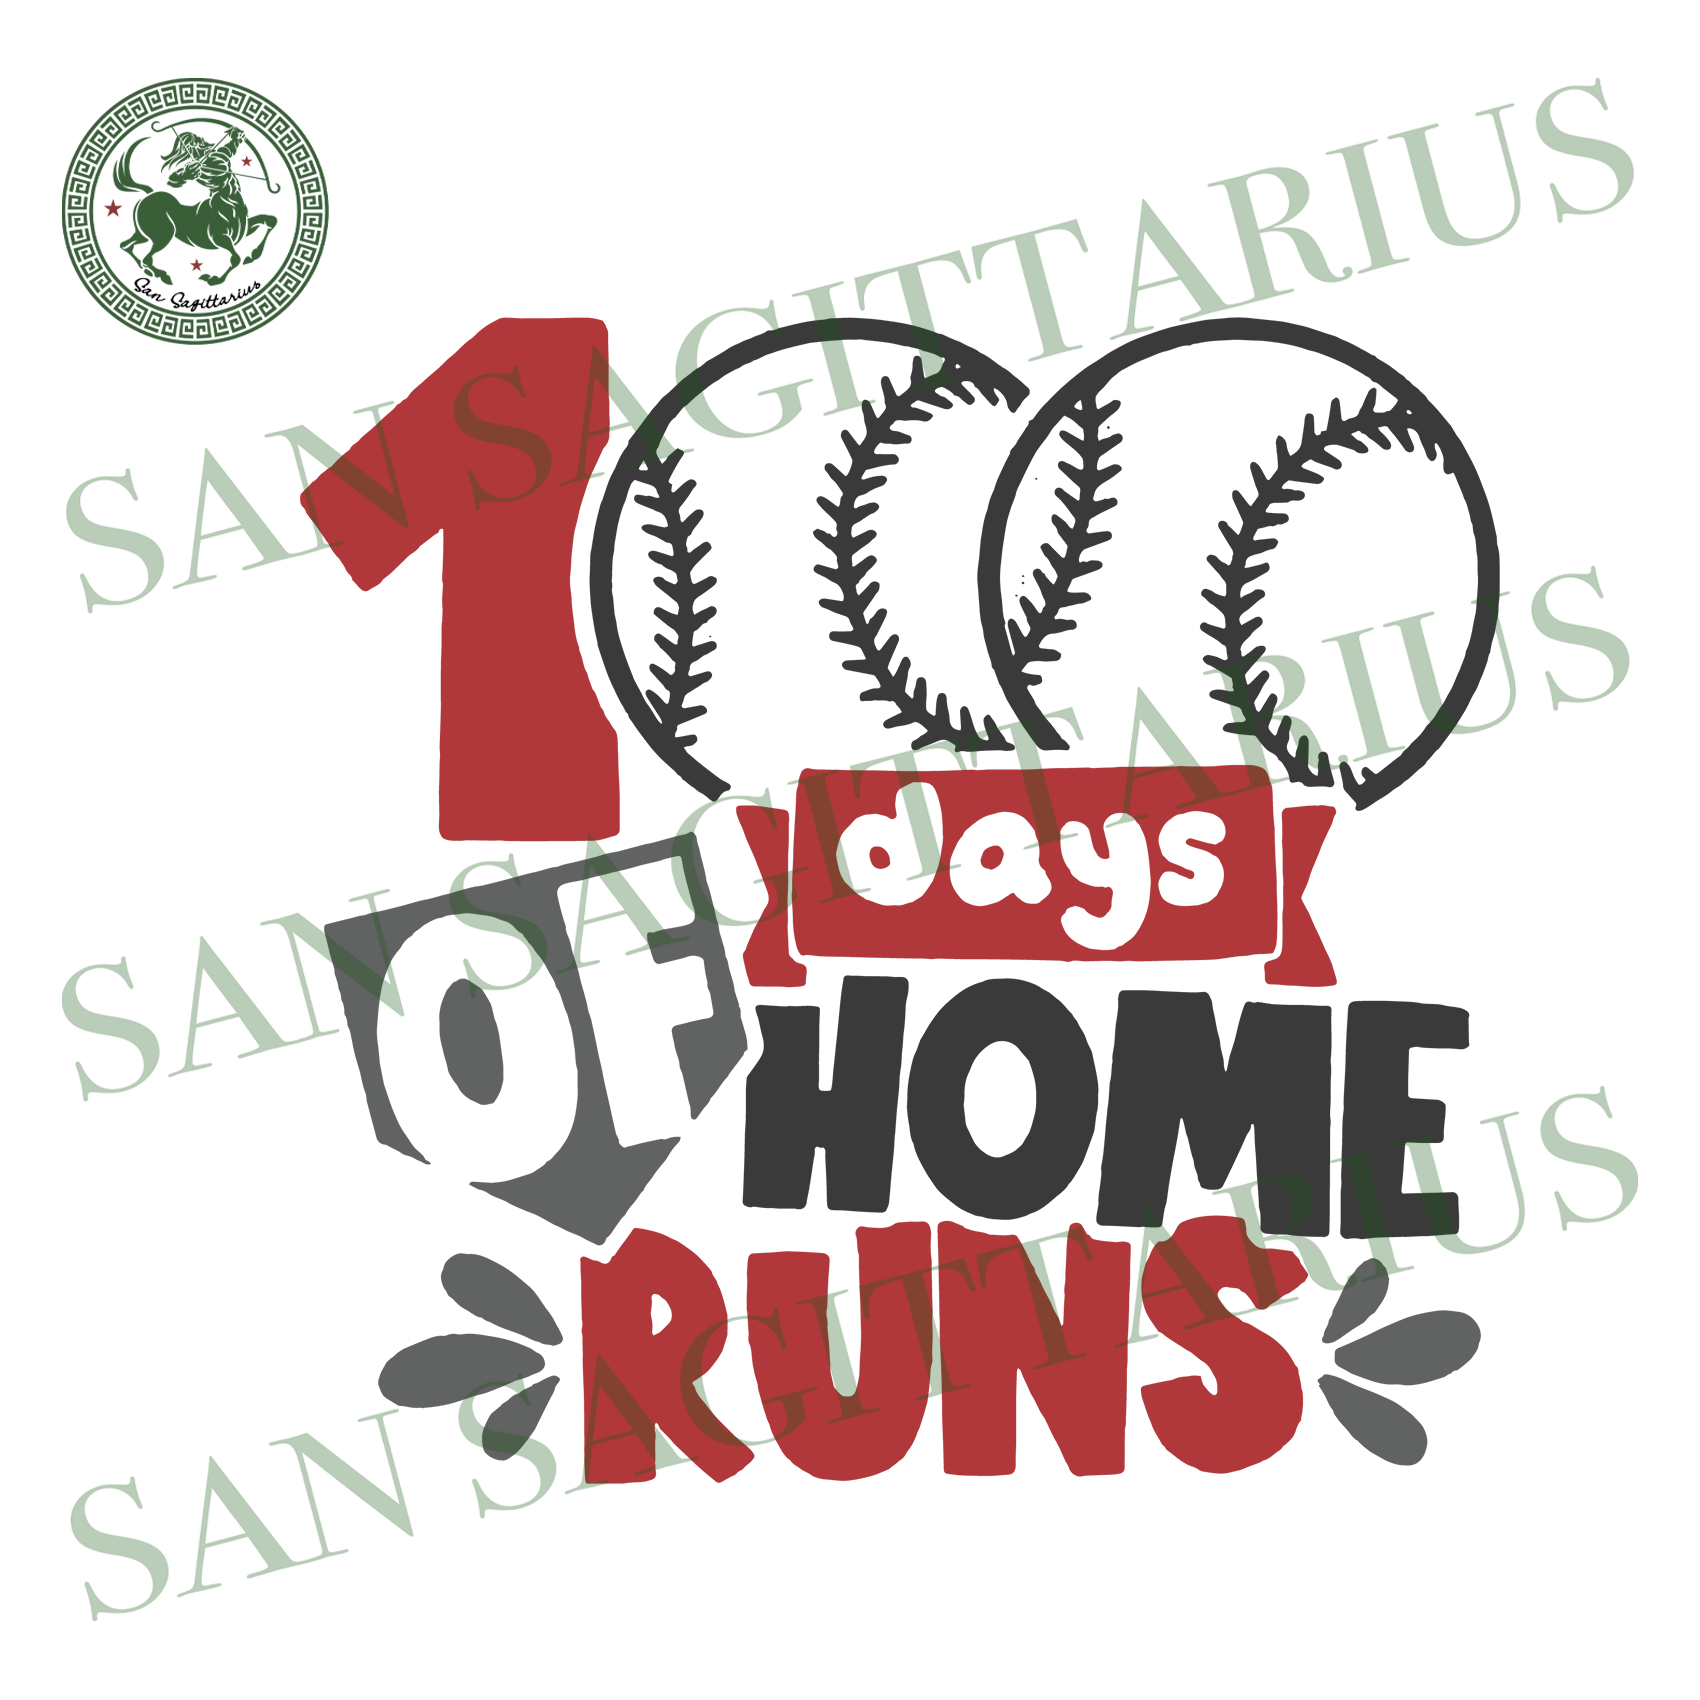 100 Days Of Home Runs,Happy 100th Day Of School, Back To School Svg, 100th Day Of School Svg,Happy 100th Day Of School Svg,Back To School,Baseball Svg, Baseball Lover,Love Baseball, 100th Day